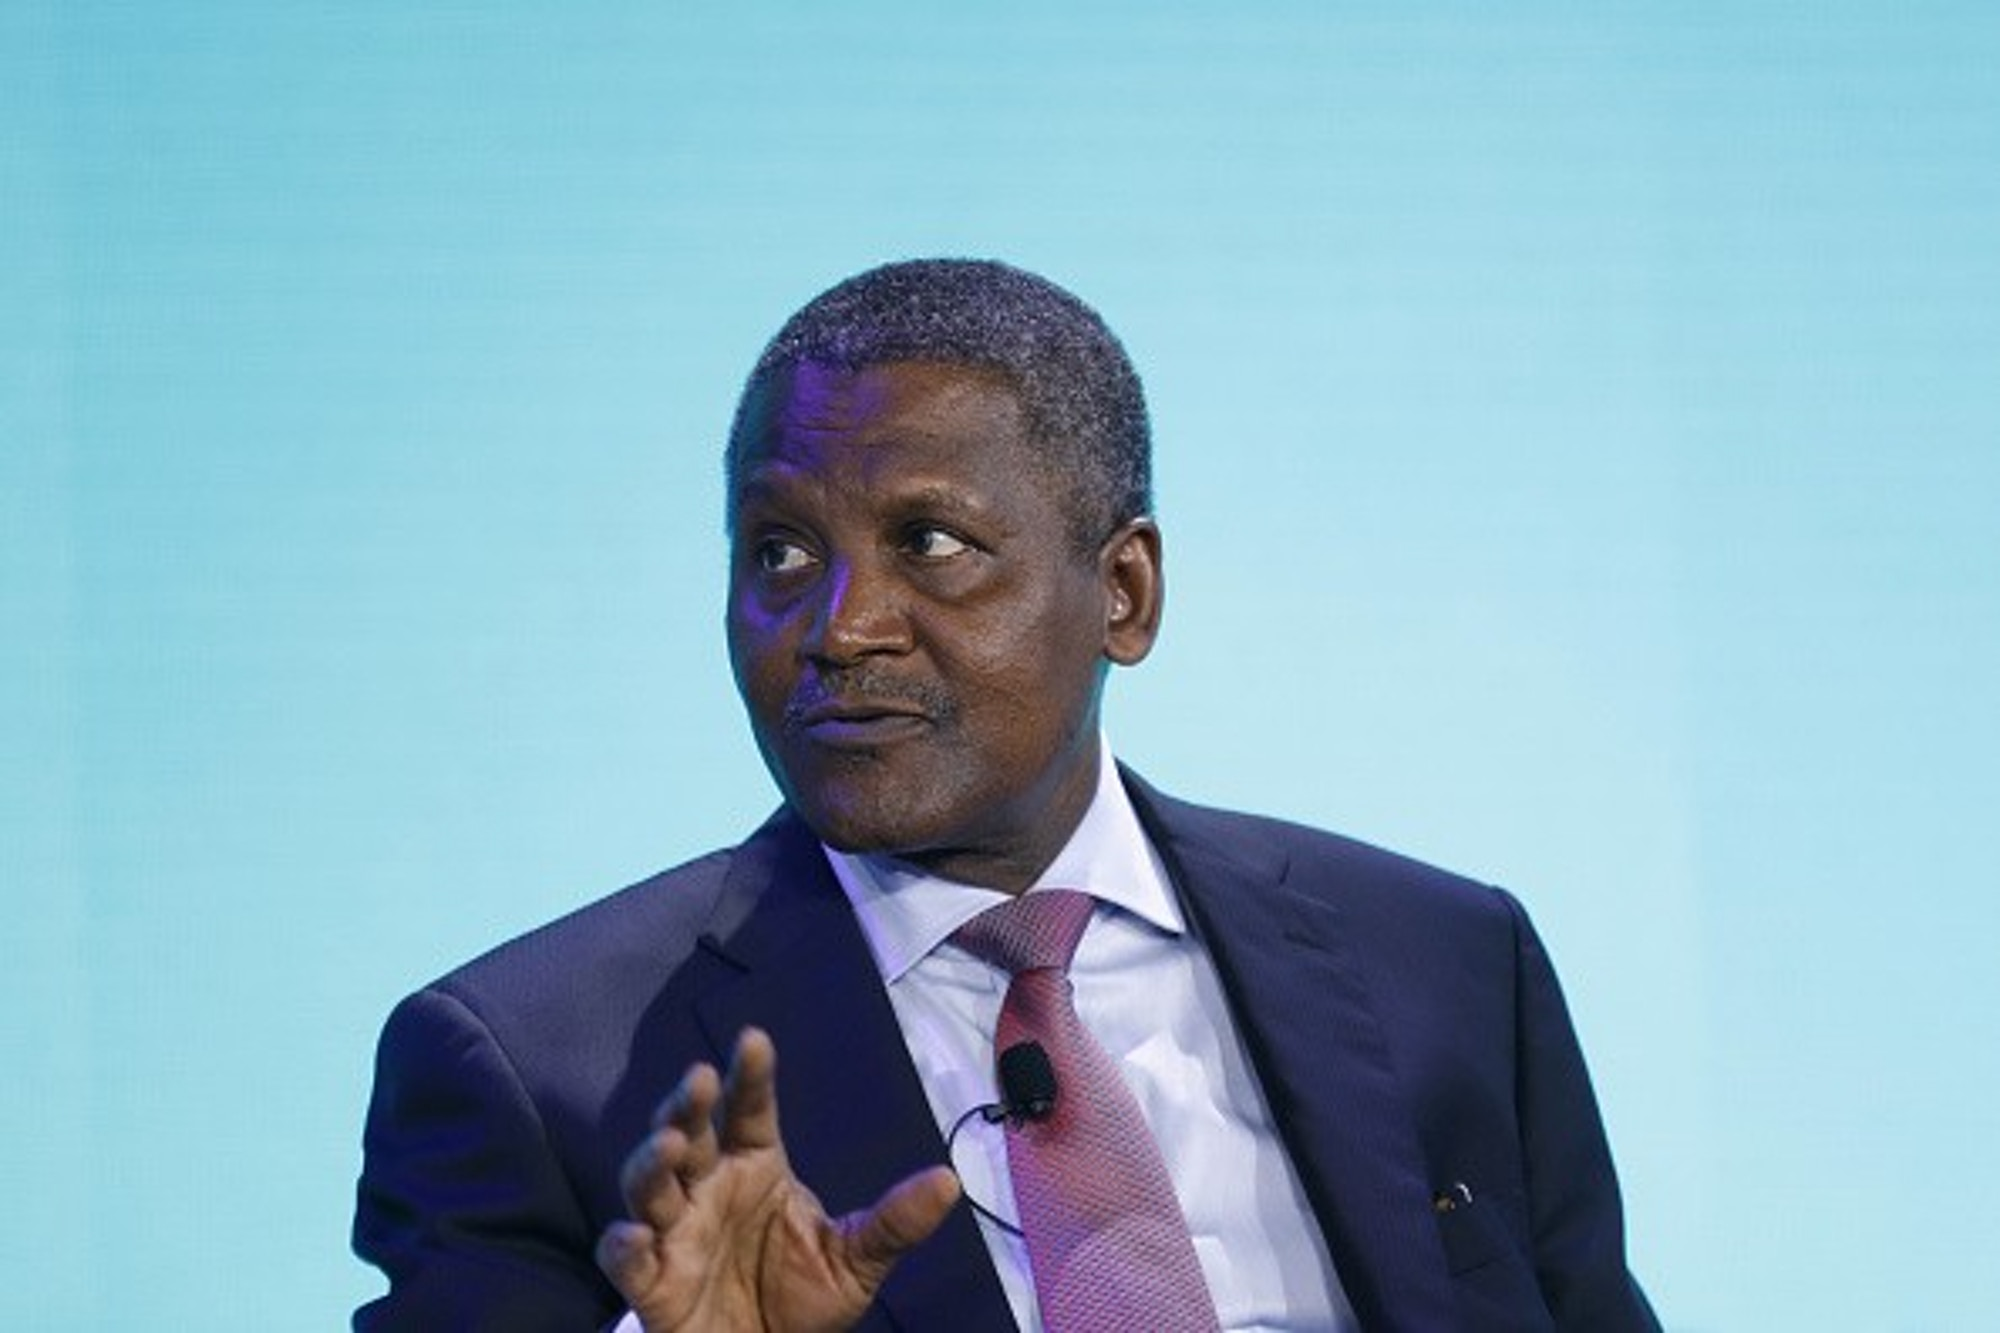 Aliko Dangote Arsenal takeover: What the headlines don't tell you